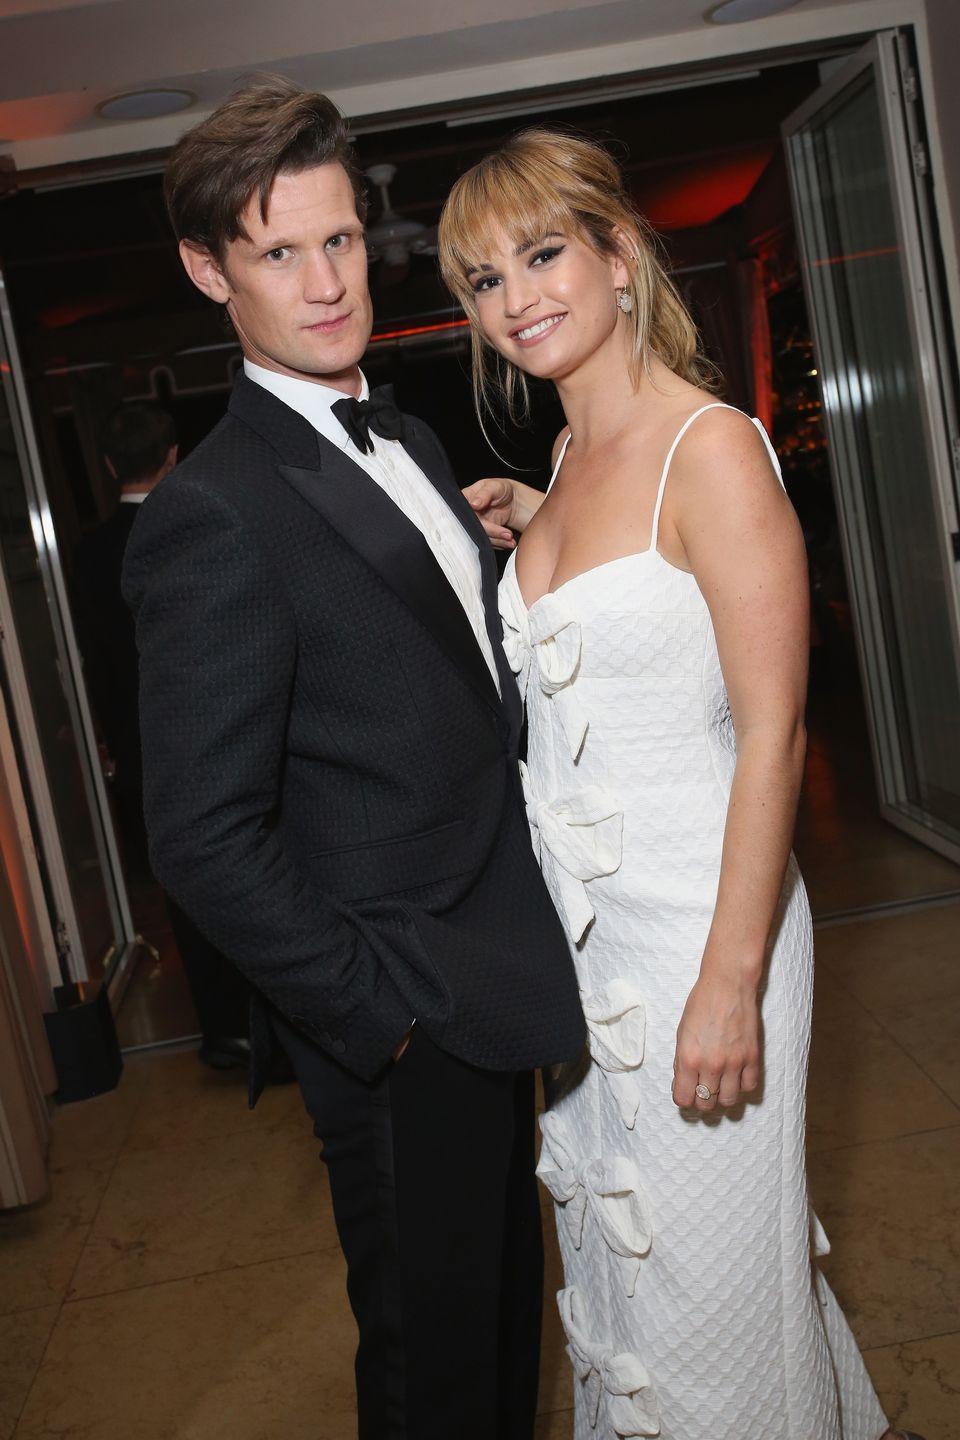 <p><strong>How long they've been together: </strong>The pair have been inseparable since first meeting on the set of <em>Pride and Prejudice and Zombies </em>in 2014. A year later, they confirmed their relationship with their red carpet appearance at the premiere of <em>Cinderella</em>. </p><p><strong>Why you forgot they're <strong>together</strong>: </strong>James and Smith started dating prior to their relative success in the United States (thanks to their roles on hit shows like <em>Downton Abbey </em>and <em>The Crown</em>). The pair tends to keep things between them hush hush, while leading a seemingly normal life together in London. </p>